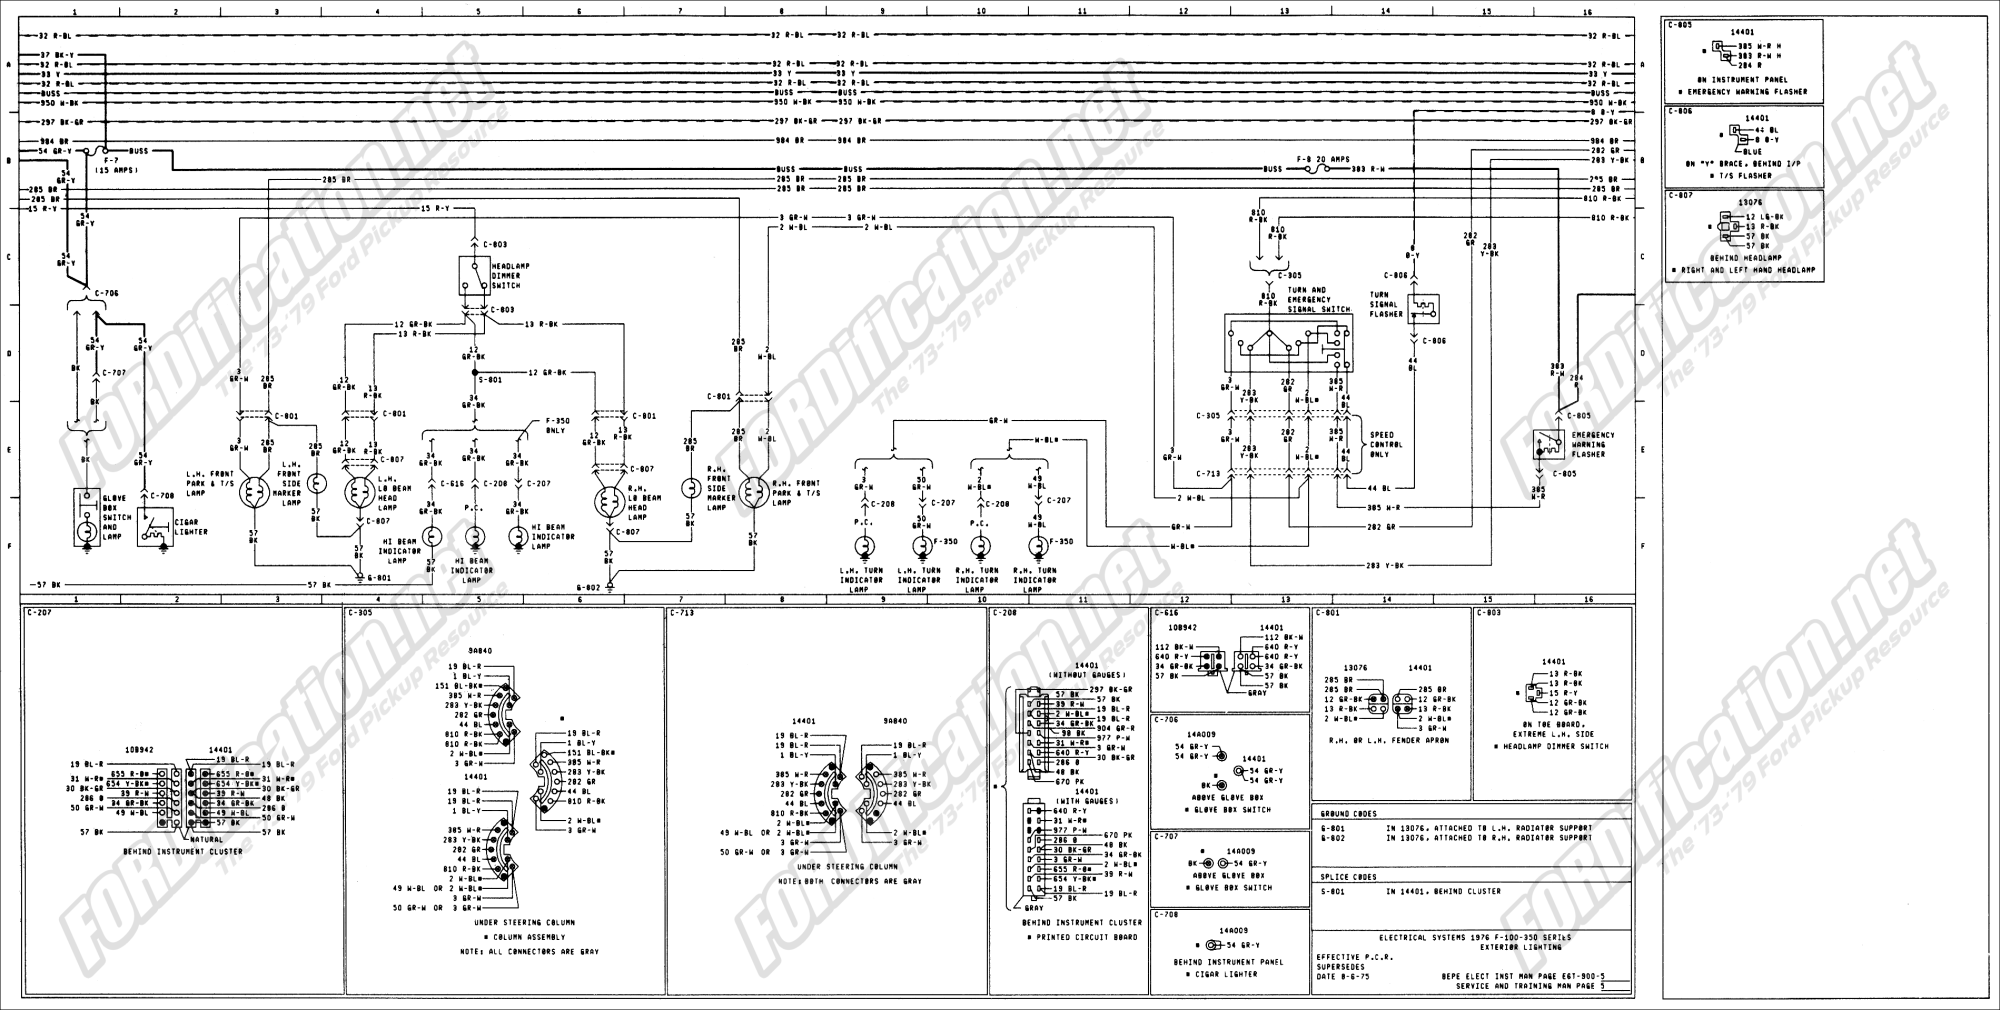 hight resolution of wrg 1669 tpi taskmaster g1g5103n wiring diagram 1973 1979 ford truck wiring diagrams schematics fordification